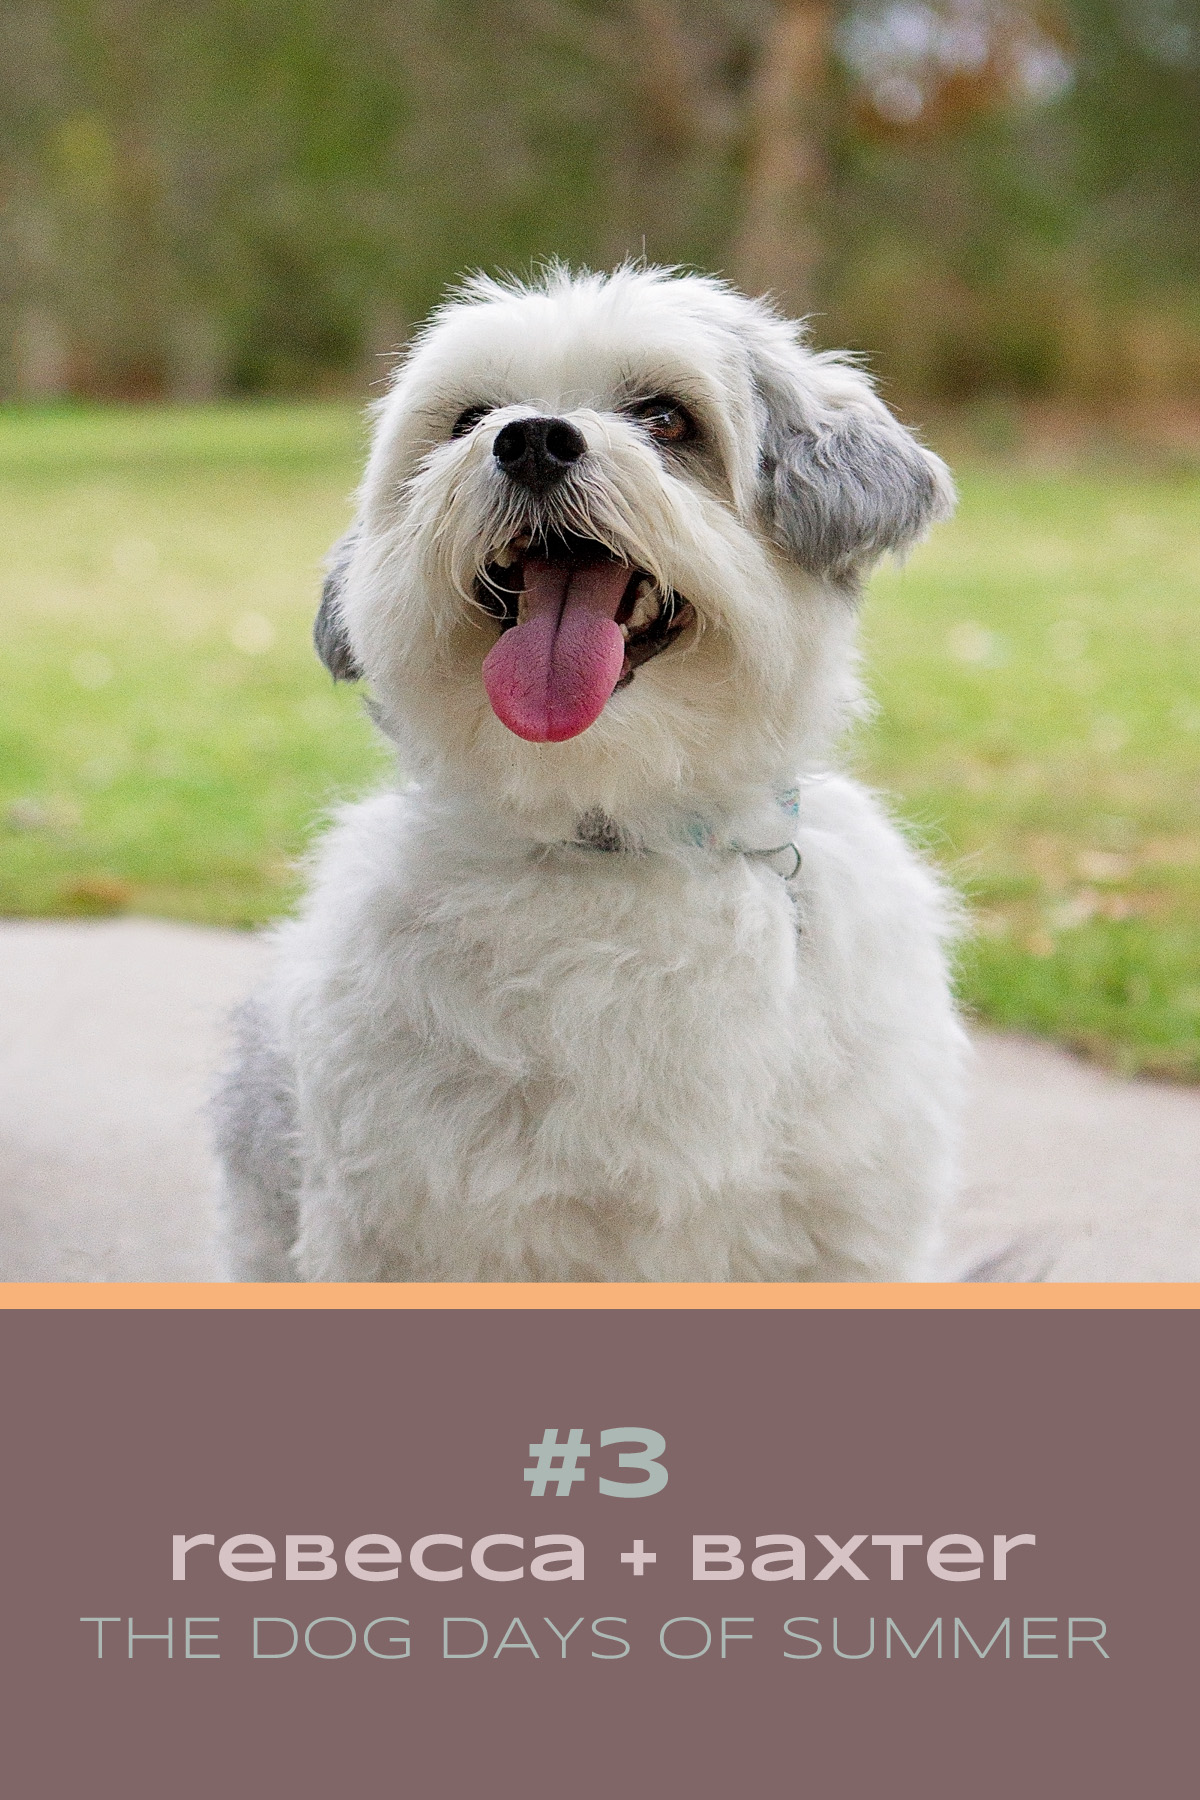 Meet Baxter, the Shih Tzu dog and his mum Rebecca who took part in the Dog Days of Summer with Pawtastic Photography | Sydney Pet Photographer